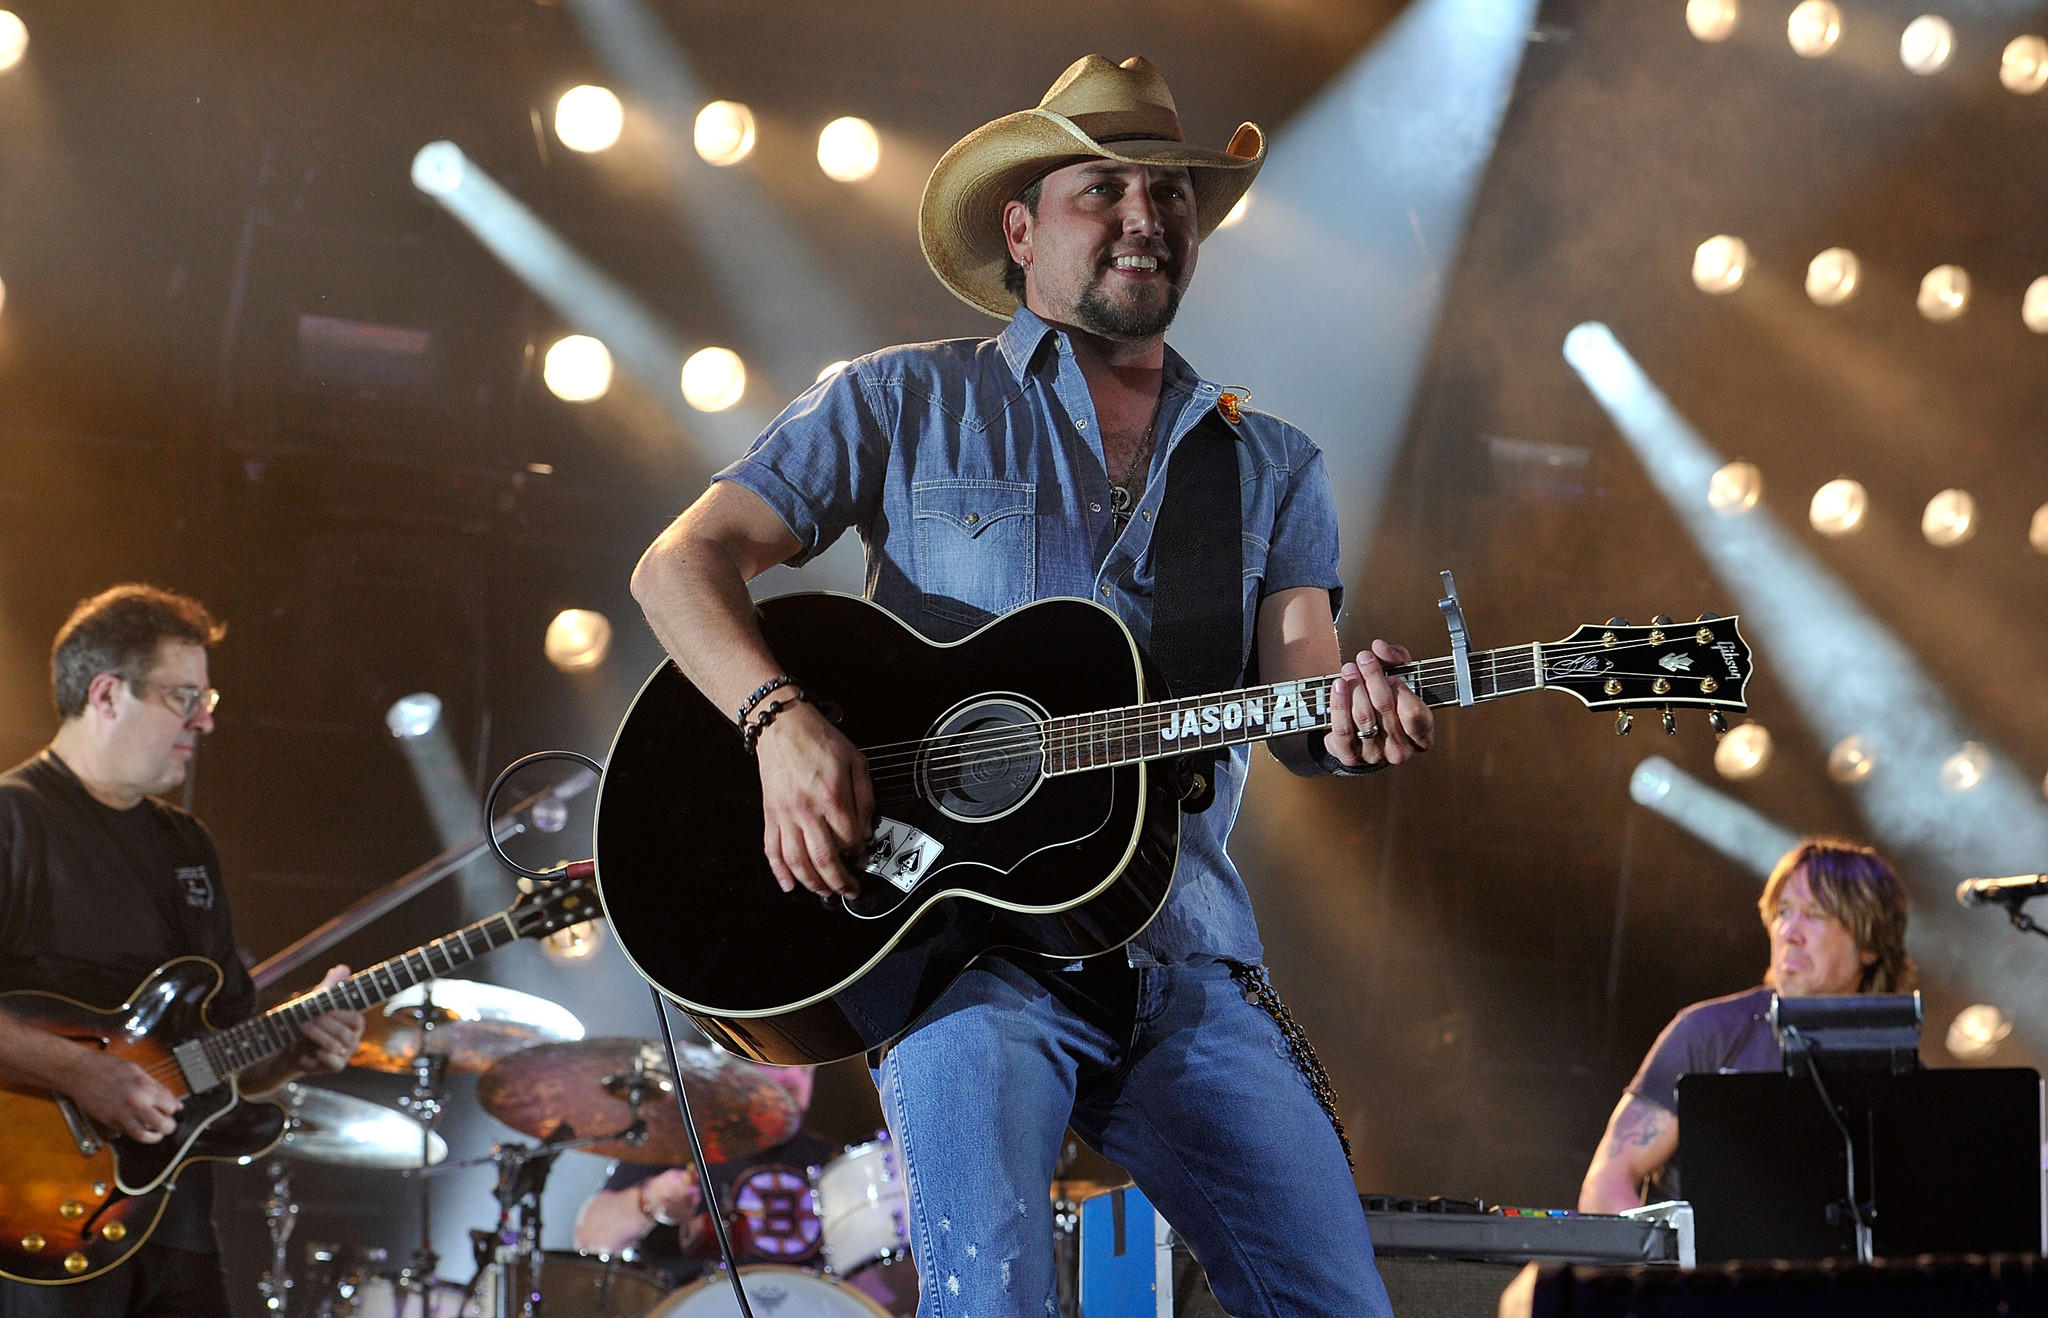 Jason Aldean, performing in Nashville in April, is among the headliners for the Stagecoach Country Music Festival in Indio.